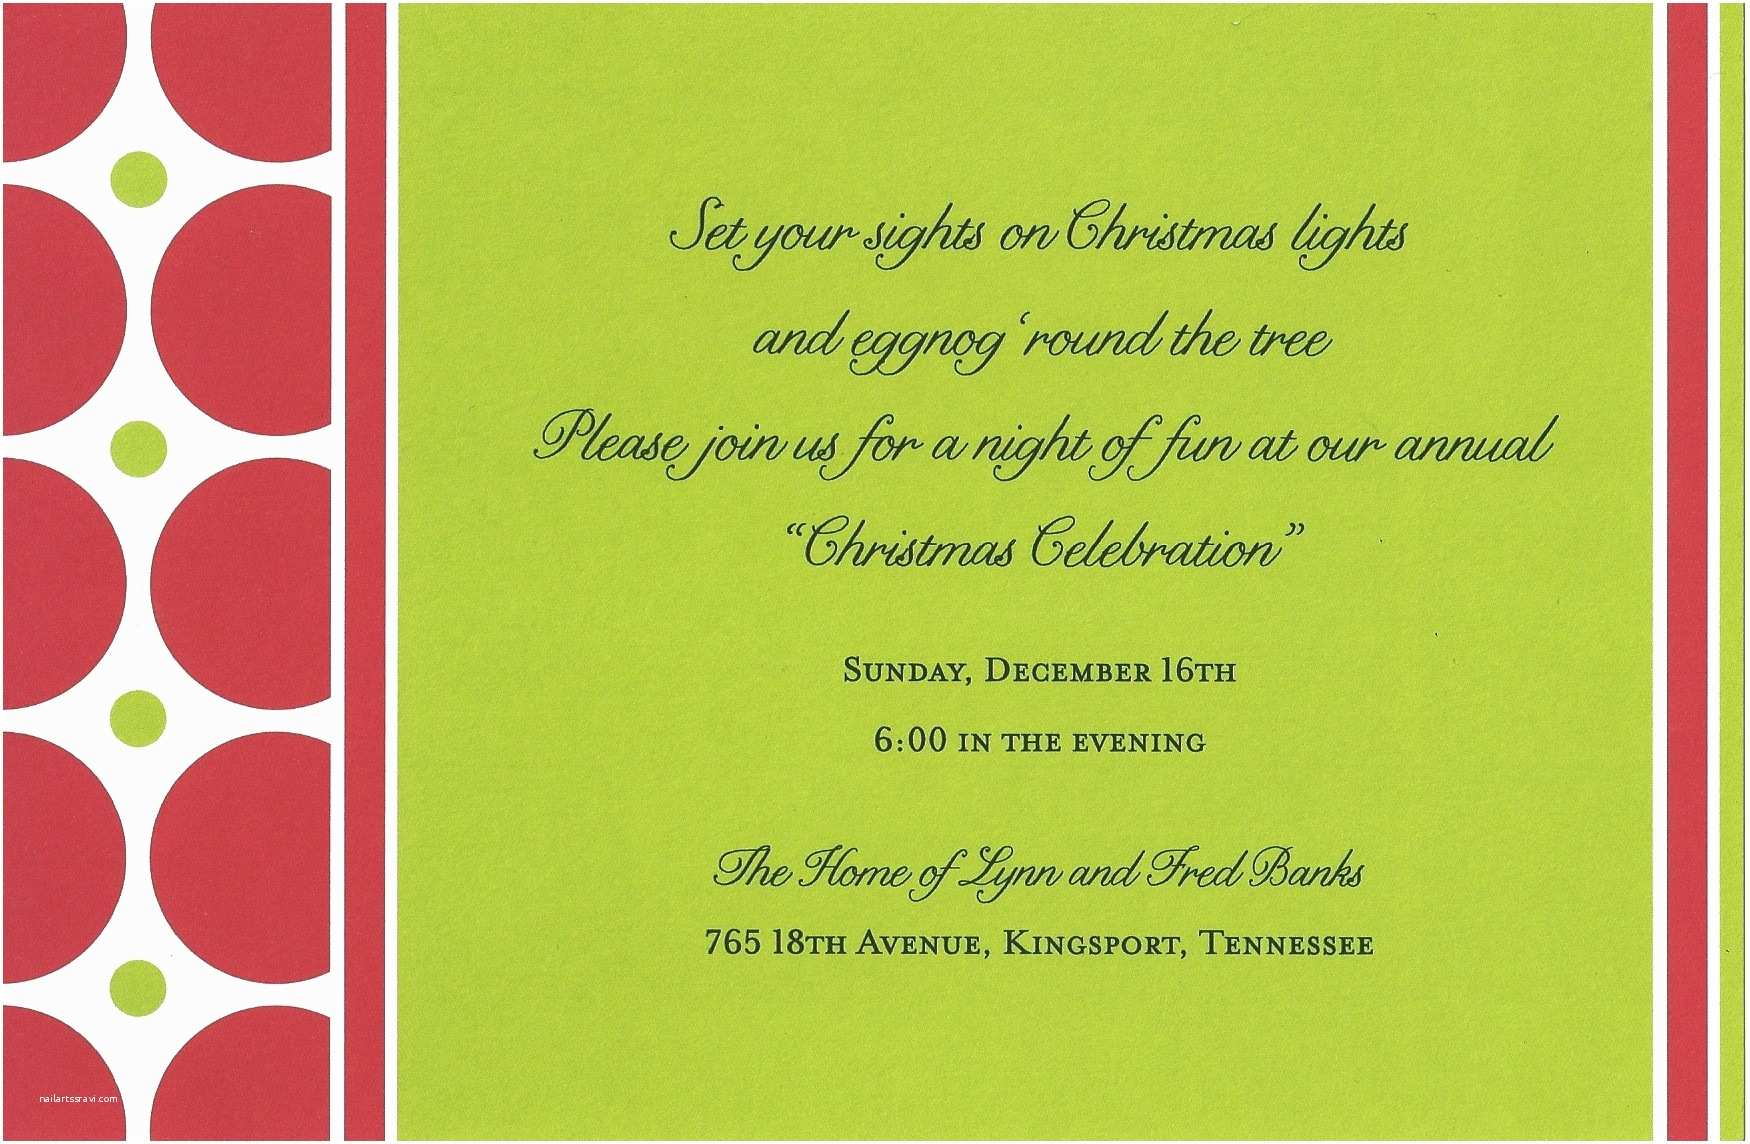 Christmas Party Invitation Wording Family Christmas Party Invitation Wording